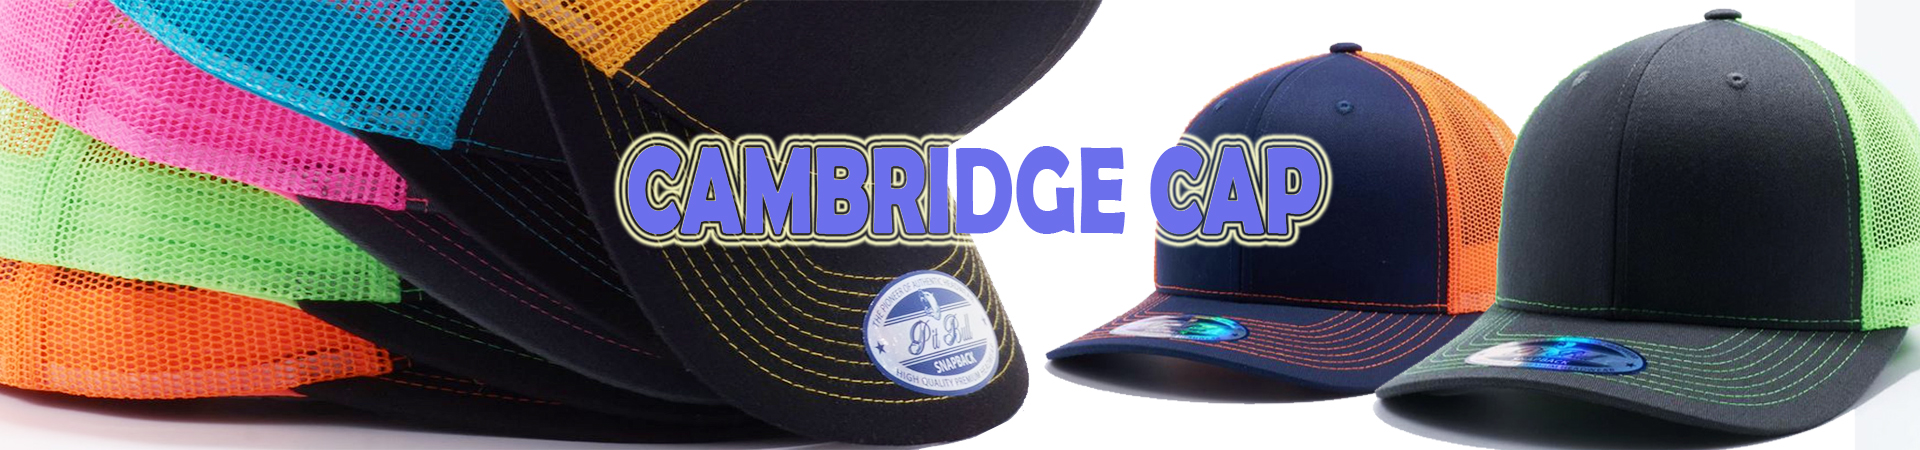 CAMBRIDGE CAP